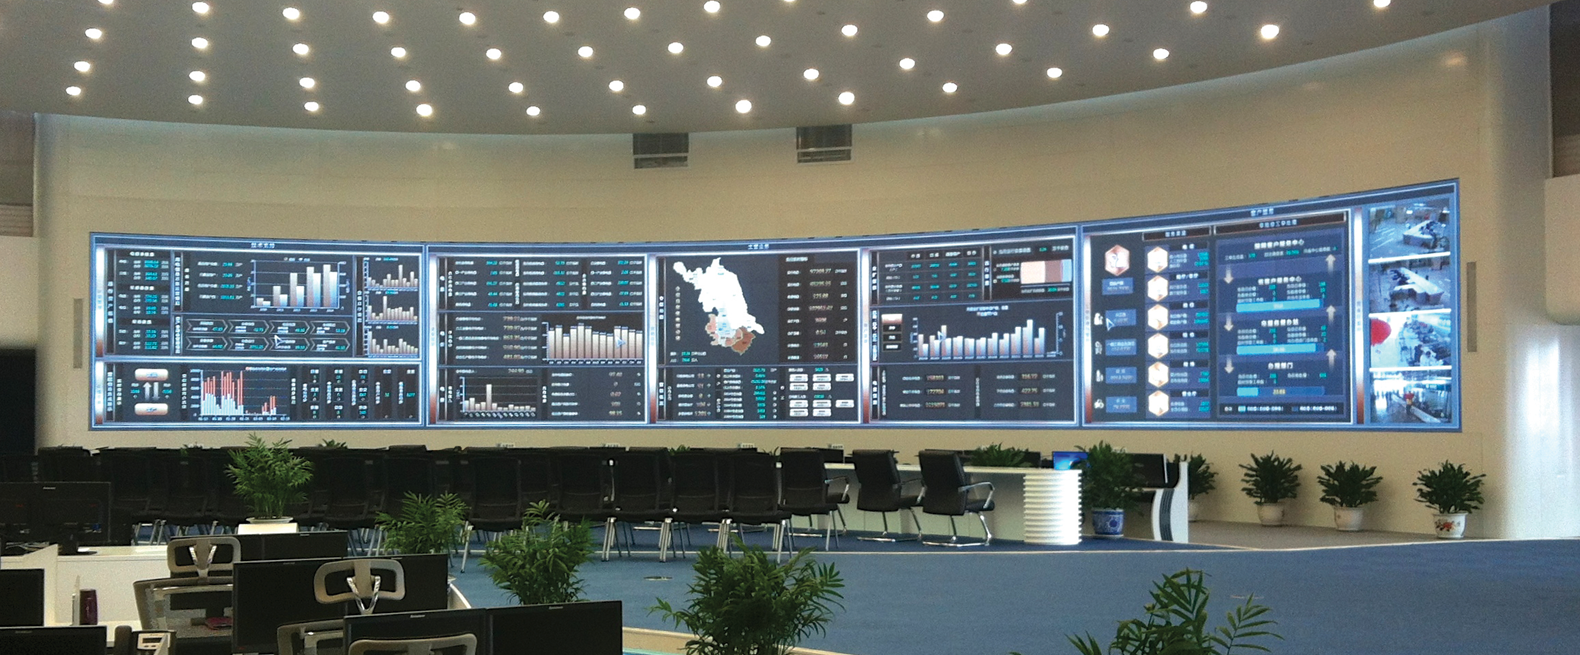 Prysm Video Wall at State Grid Corporation of China